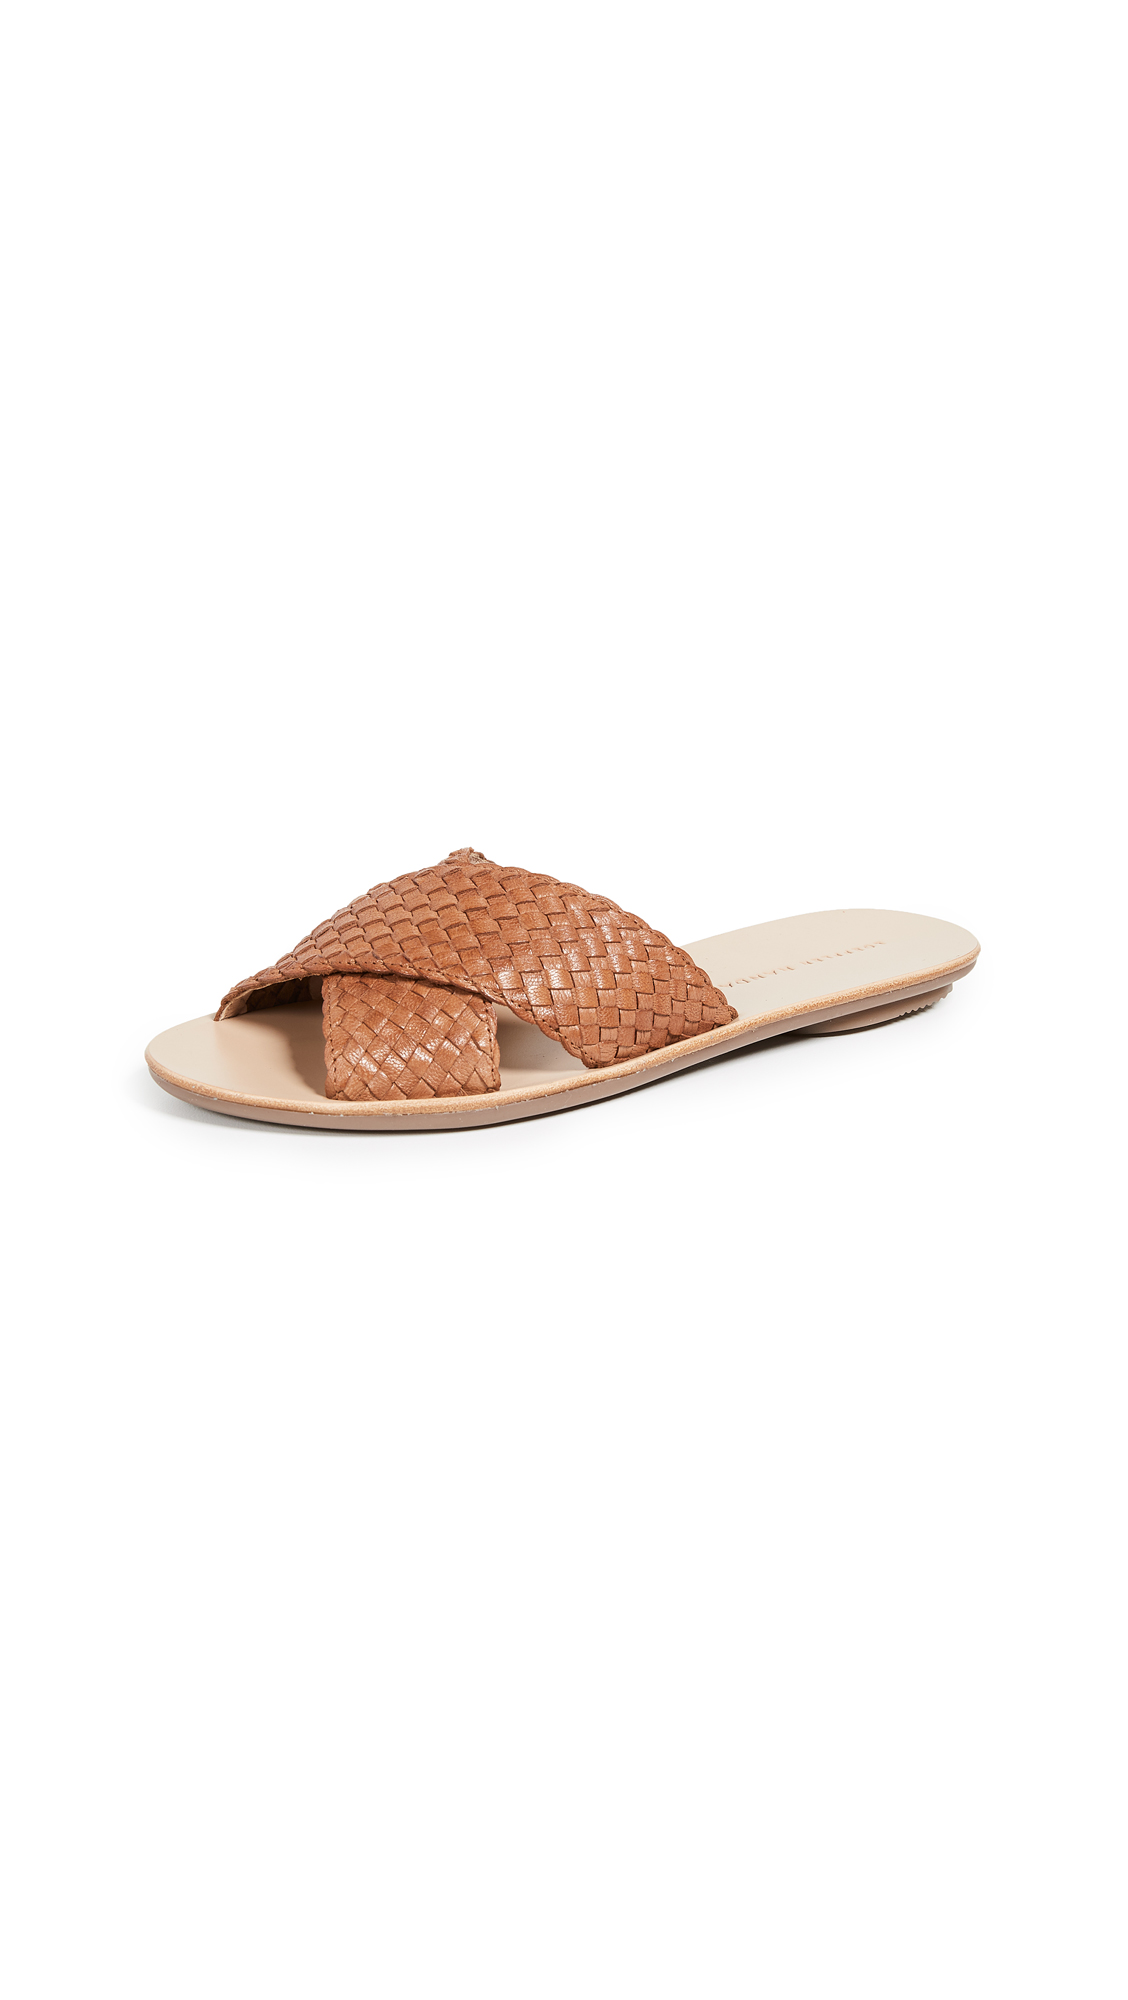 Loeffler Randall Claudie Slide Sandals - Timber Brown